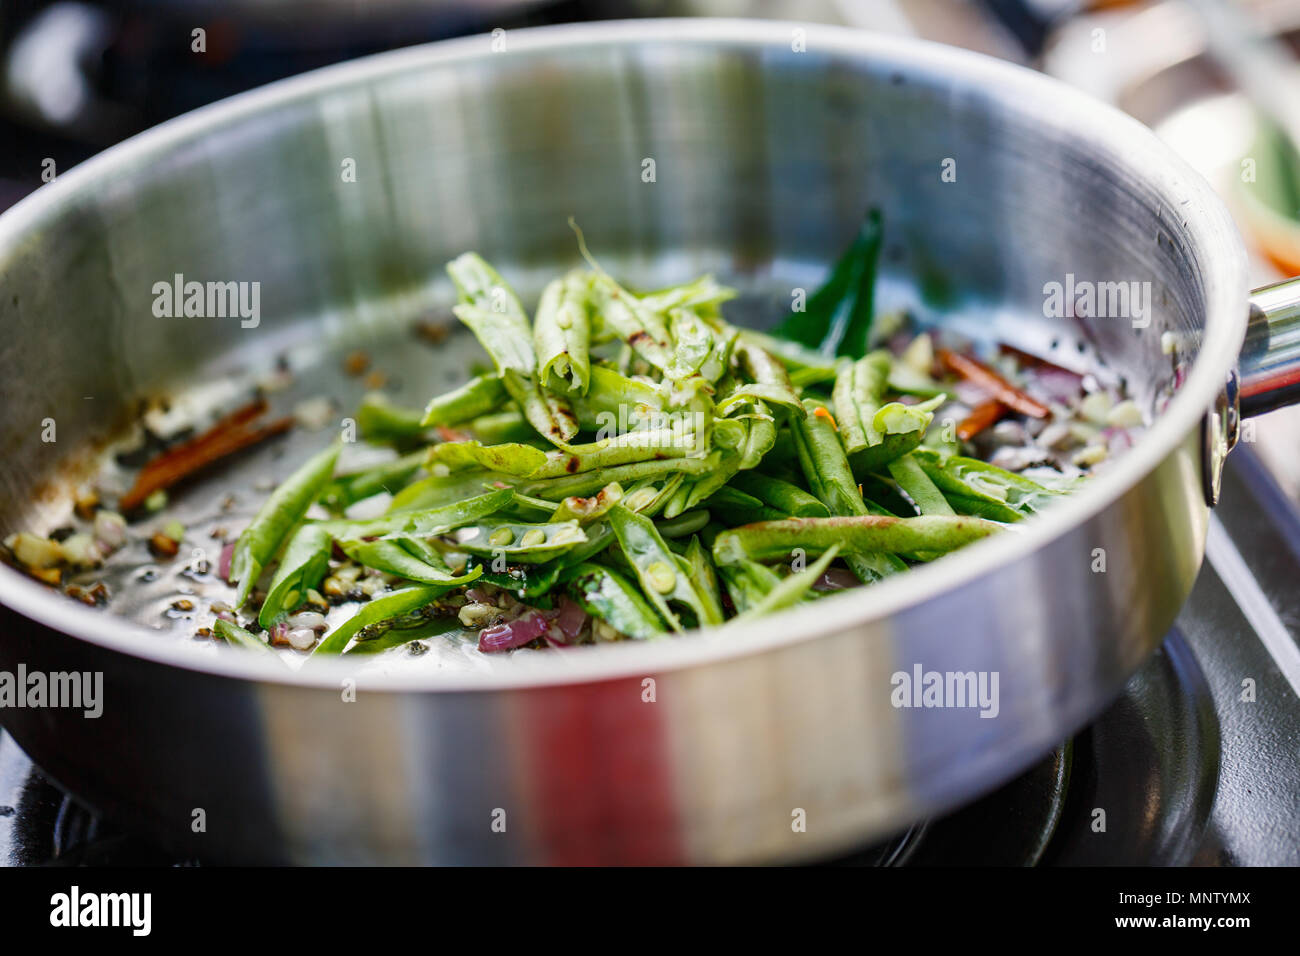 Preparation of traditional Sri Lankan dish with green beans at cooking class - Stock Image